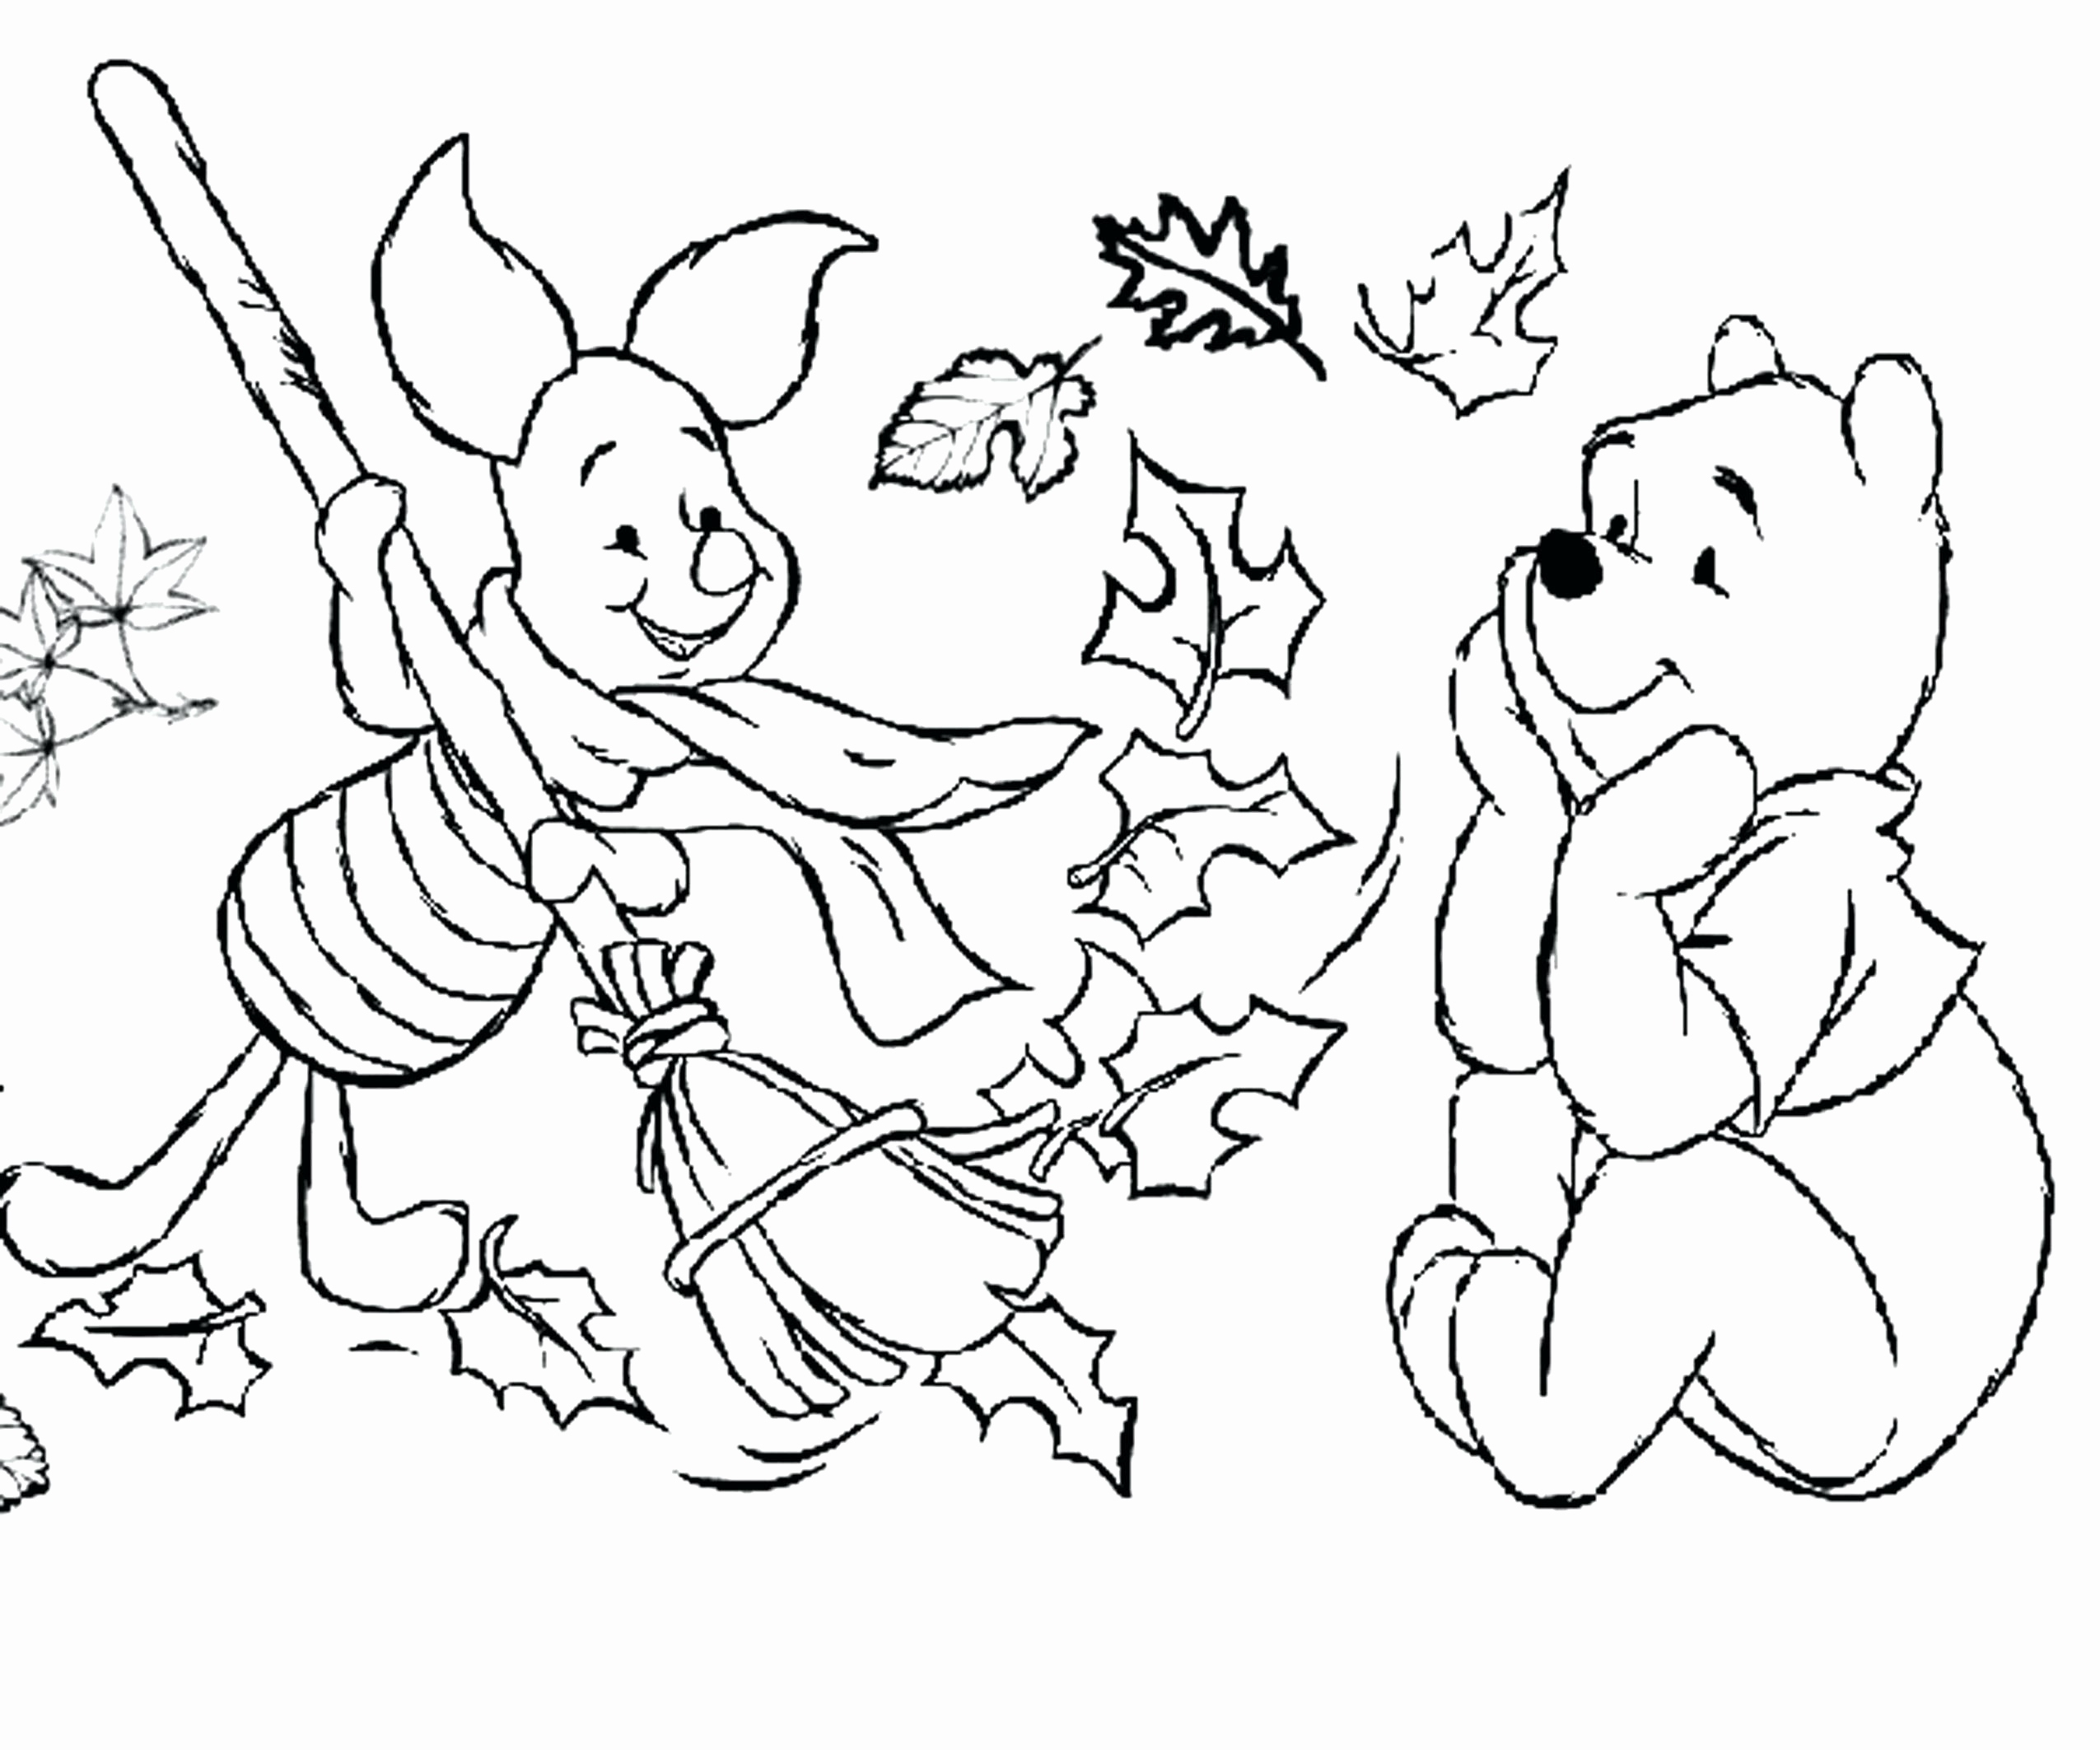 coloring pages for preschoolers Download-Spider Coloring Pages Preschool Fall Coloring Pages 0d Coloring Page Fall Coloring Pages for Kids 1-a